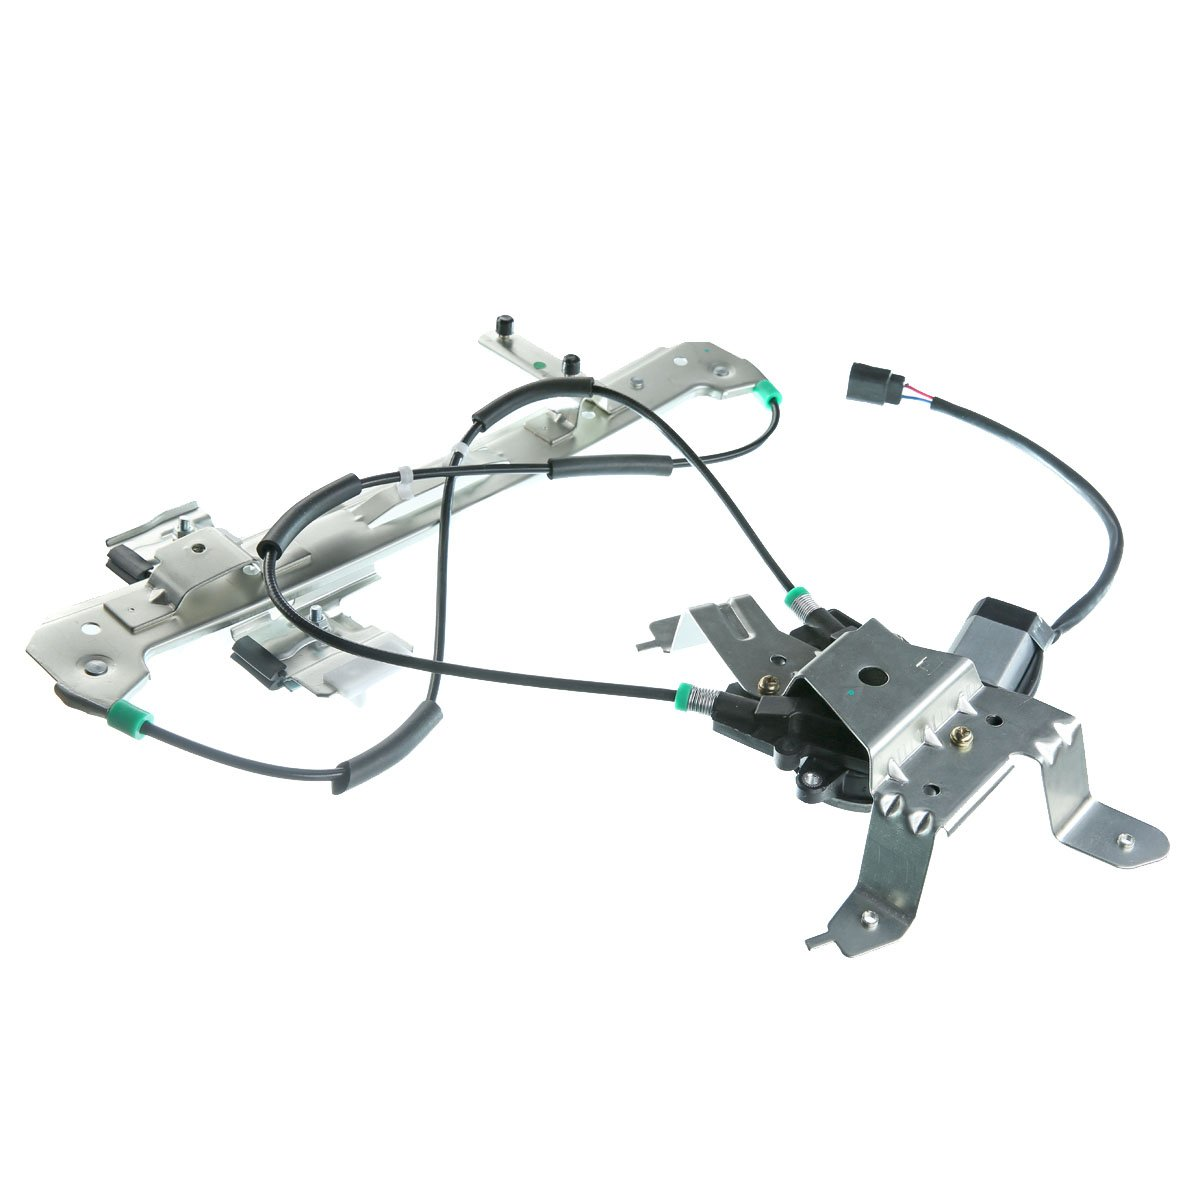 Rear Left Driver Side Window Regulator with Motor for Chevrolet Tahoe GMC Yukon 2000-2006 Cadillac Escalade 2002-2006